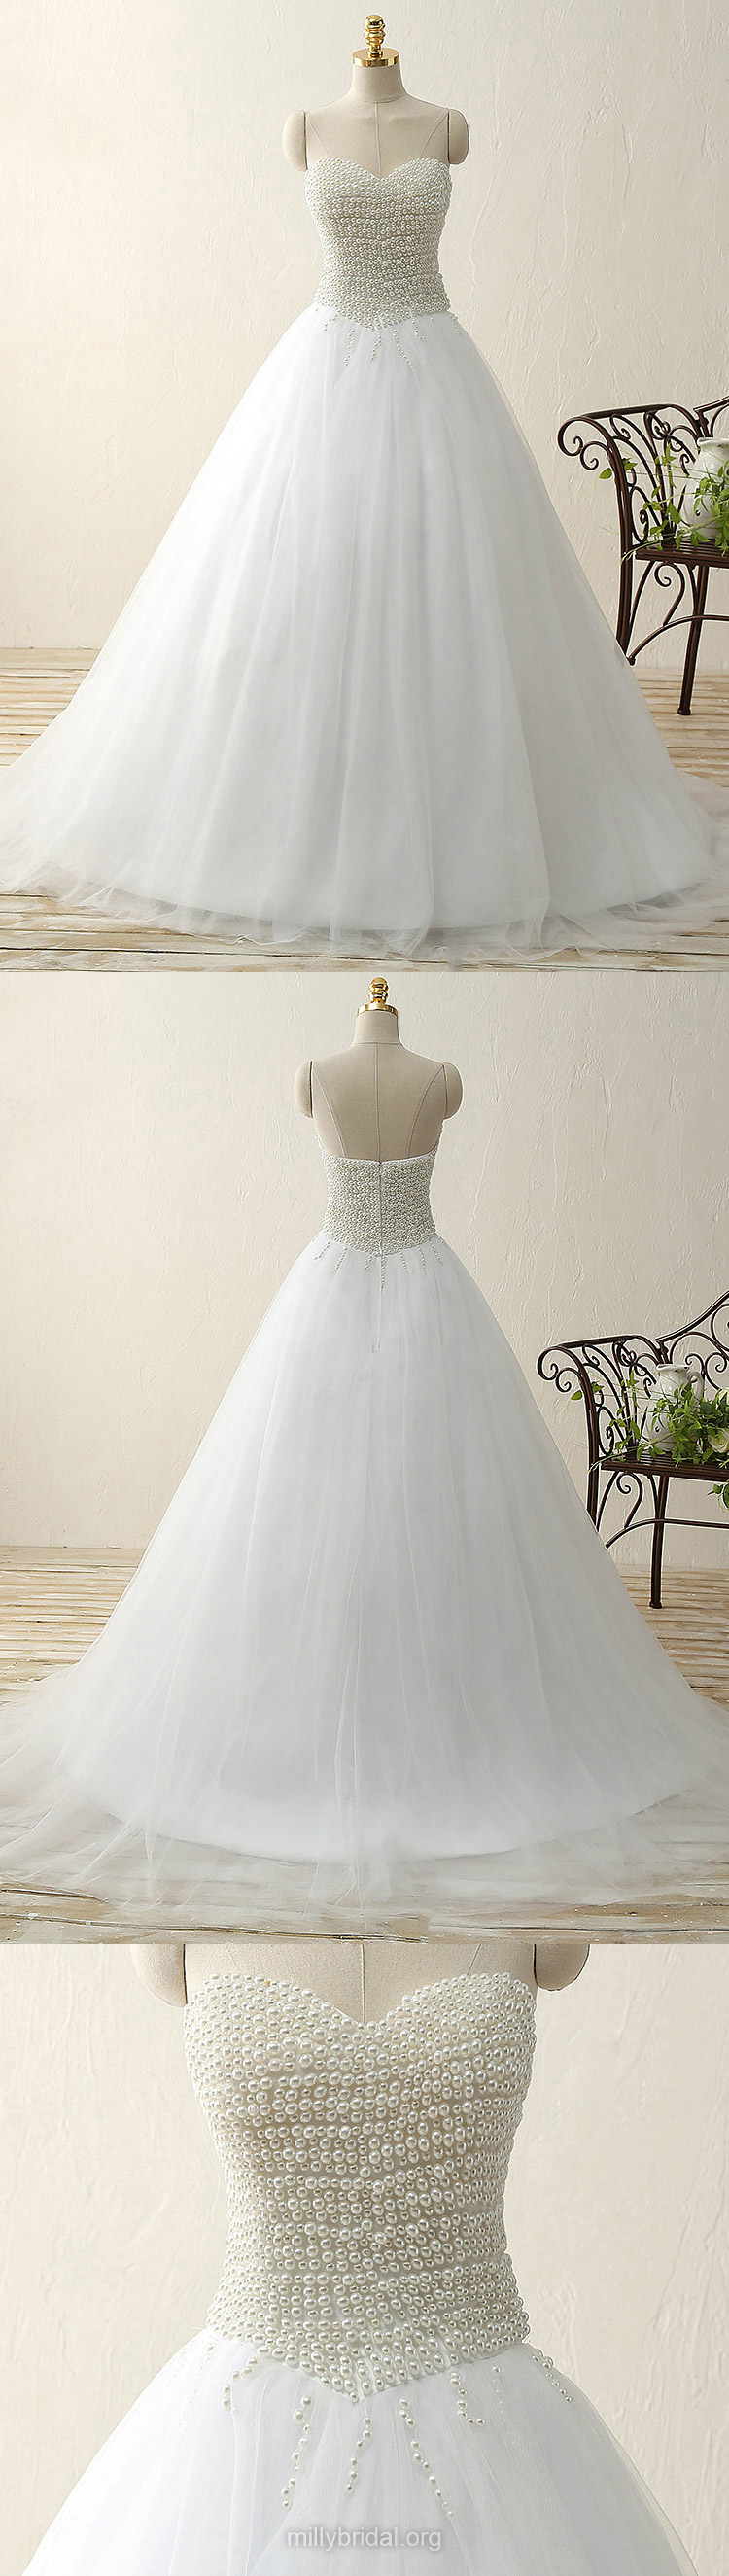 White prom dresses princess ball gown party dresses sweetheart